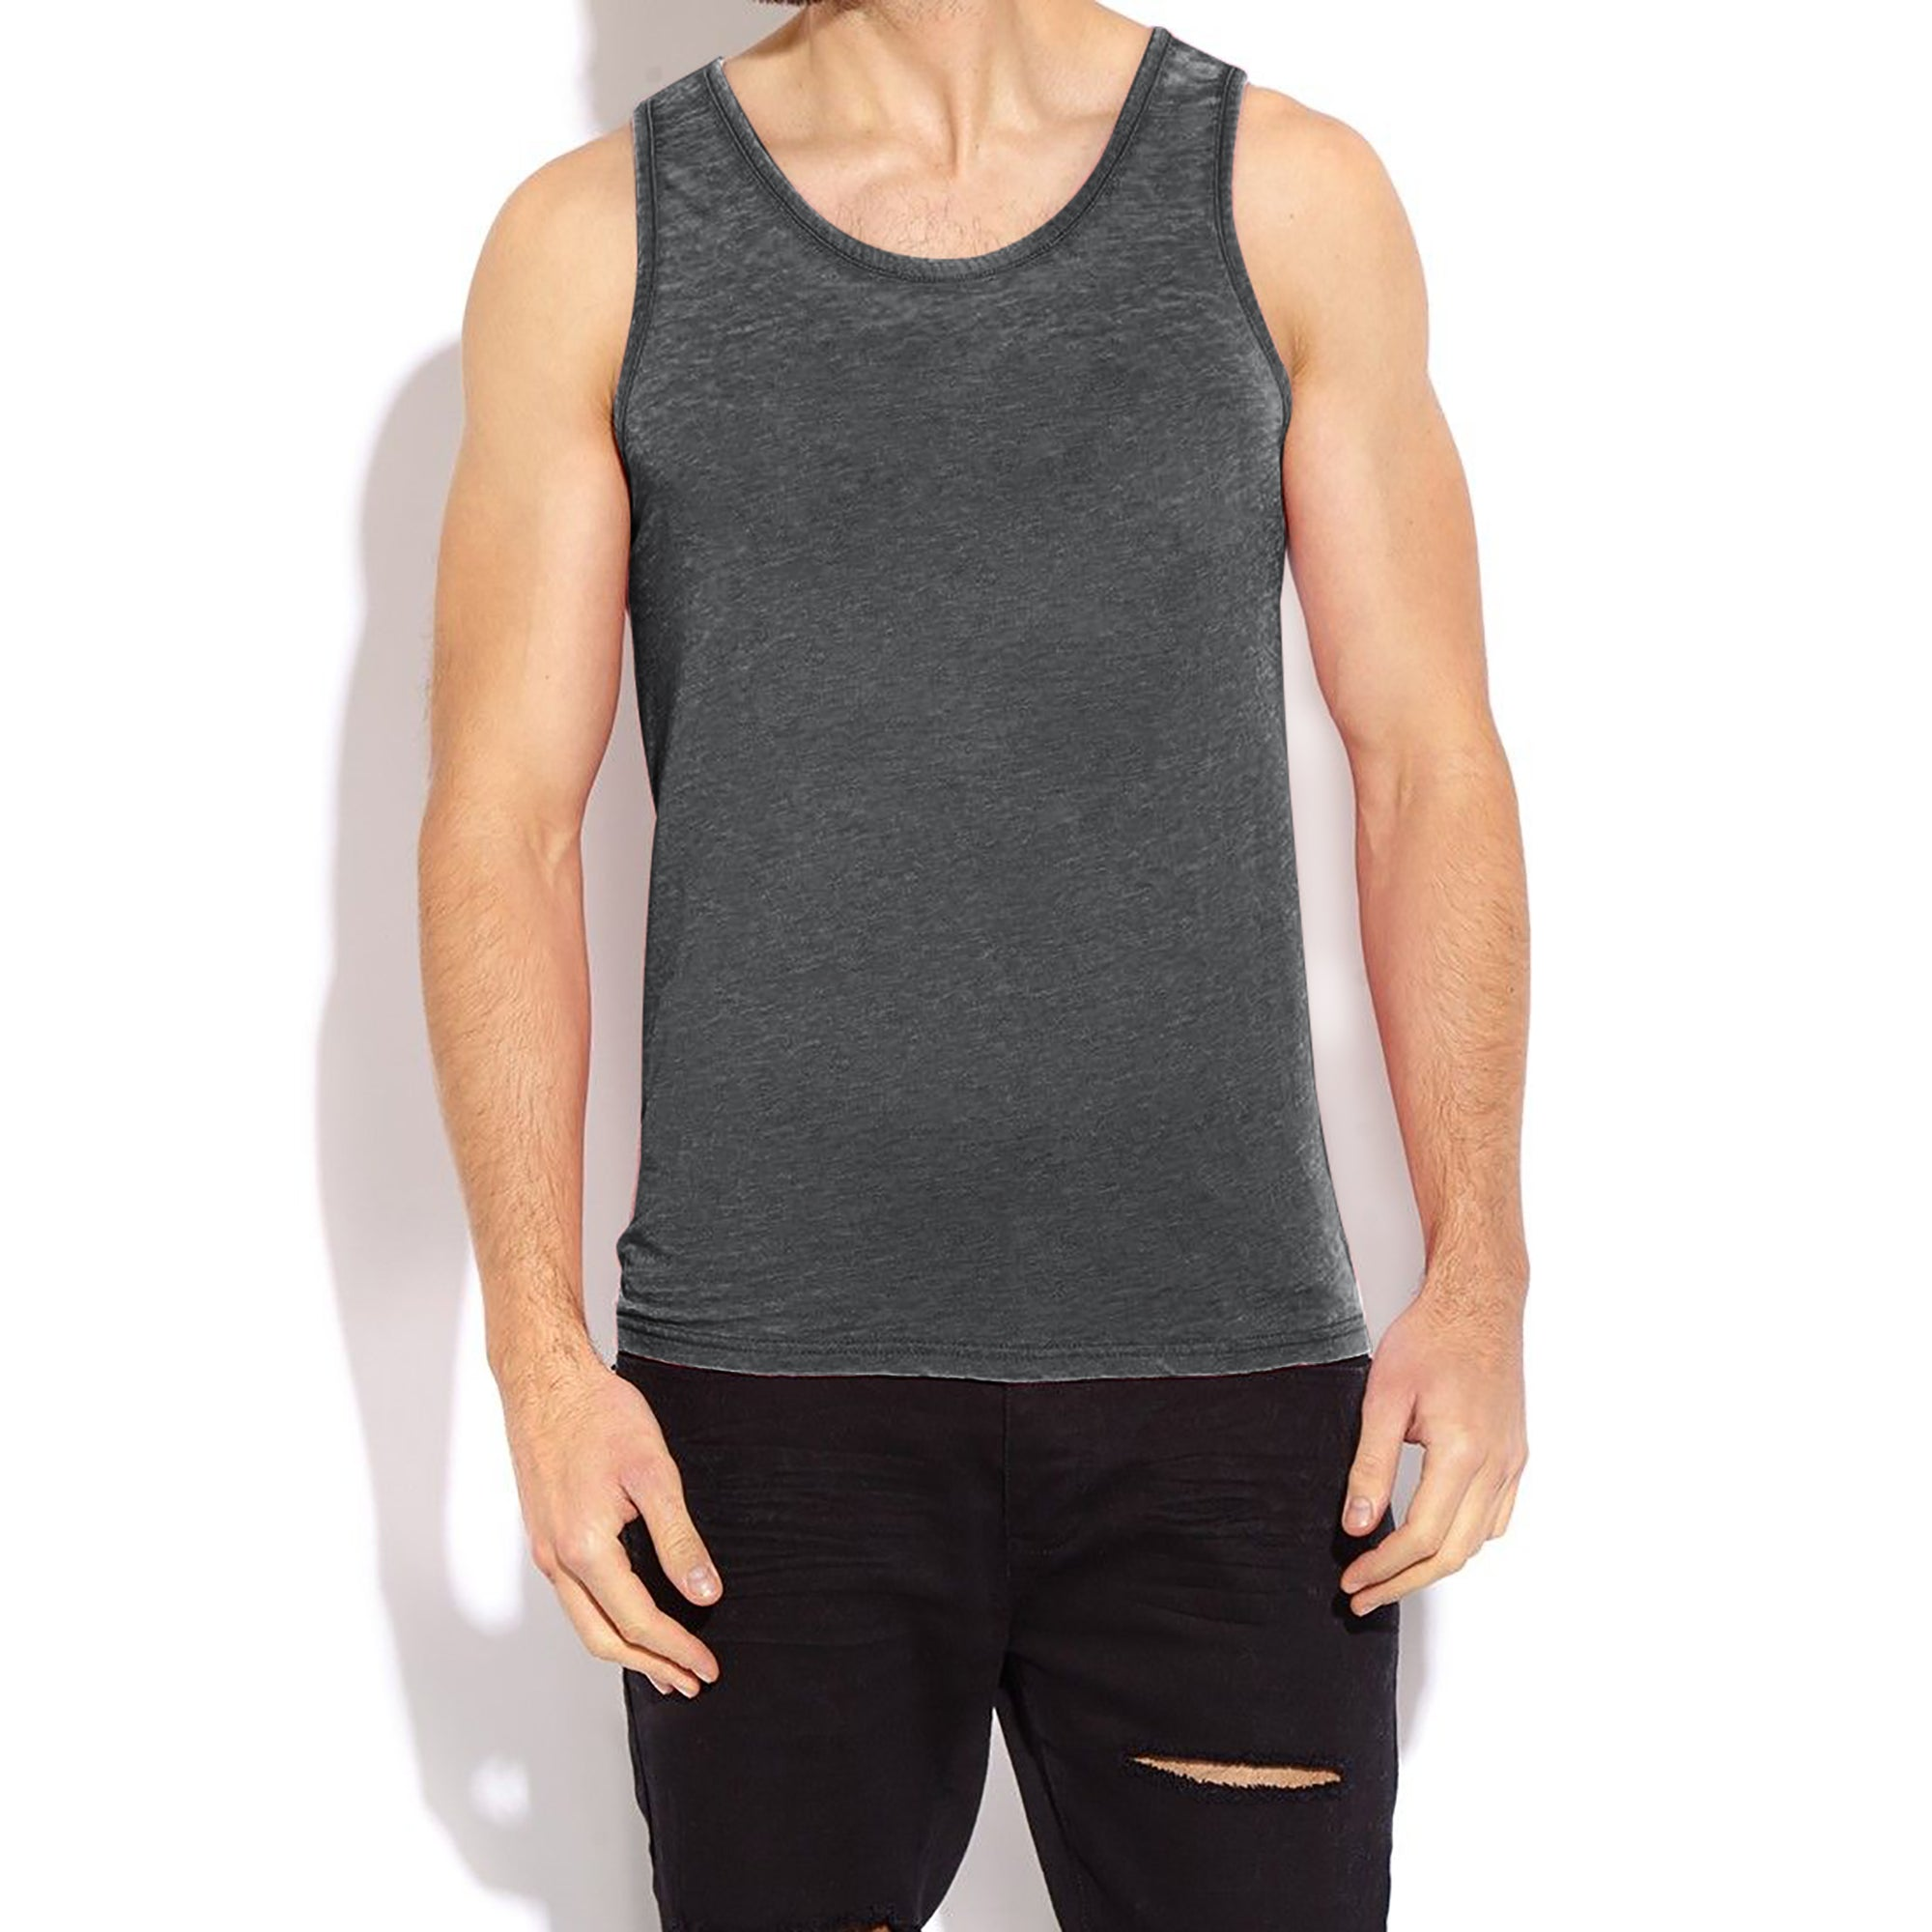 brandsego - River Island Sleeveless Burnout Vest For Men-Charcoal-BE7419